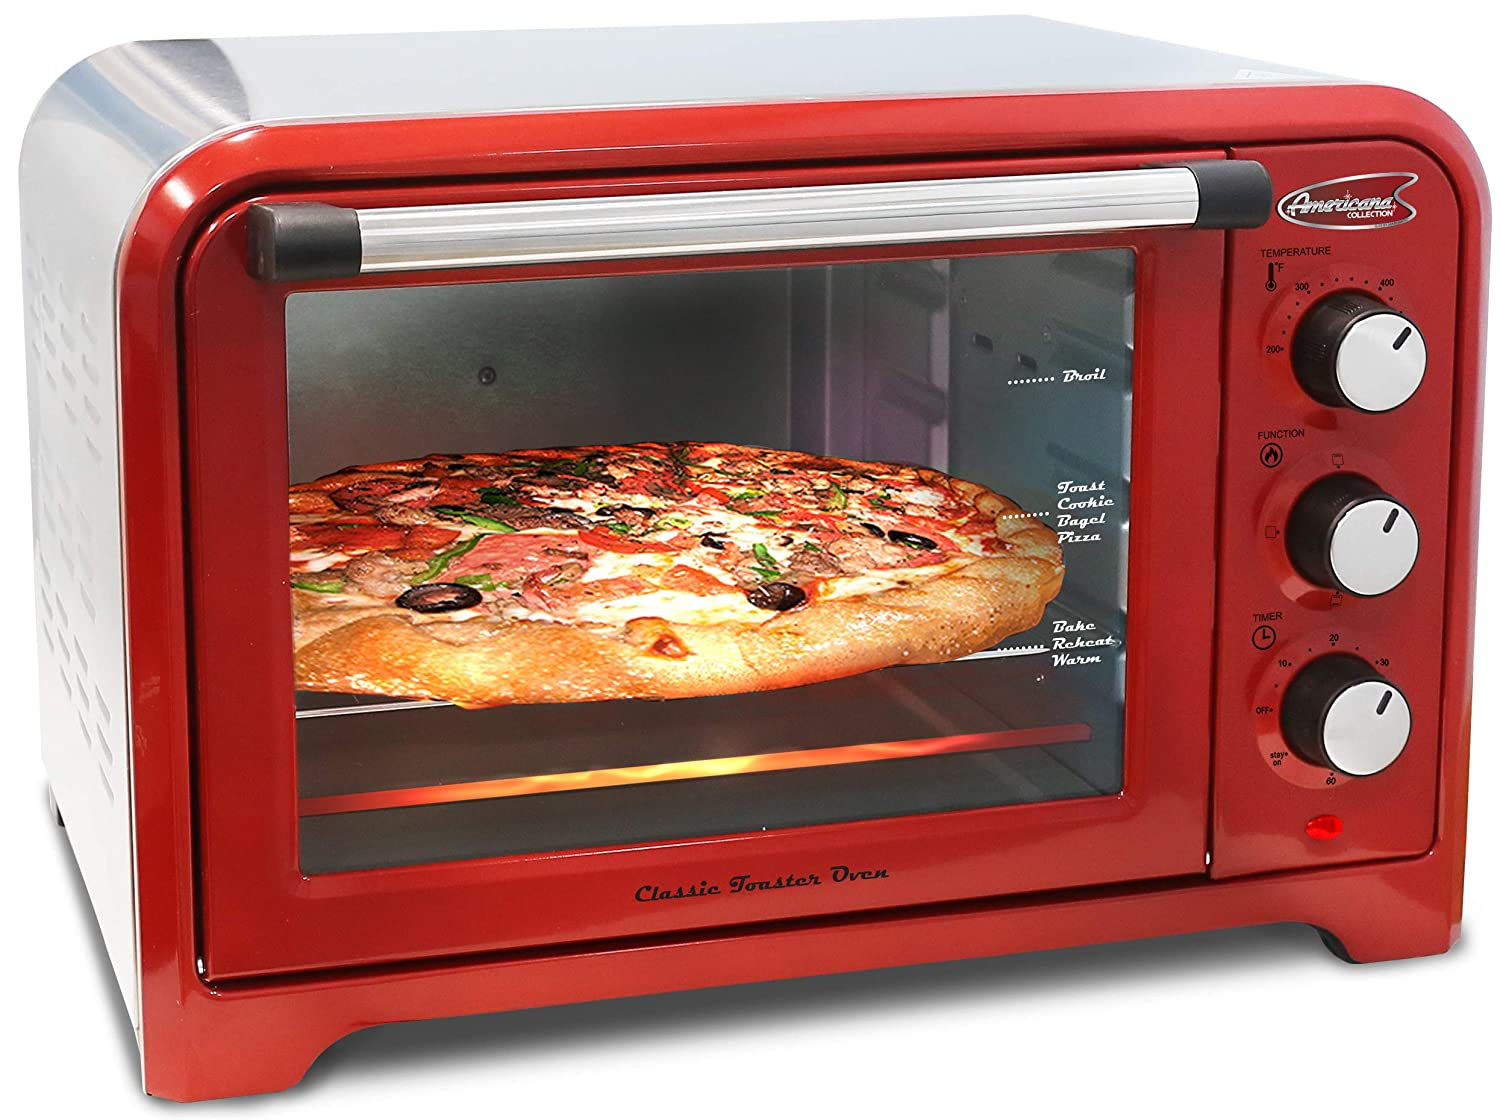 Americana by Elite ERO-2600R Vintage Diner 50 s Retro 12 Pizza Countertop Toaster oven, Bake, Broil, Toast, Temperature Control Adjustable Timer, 6 slice, Red